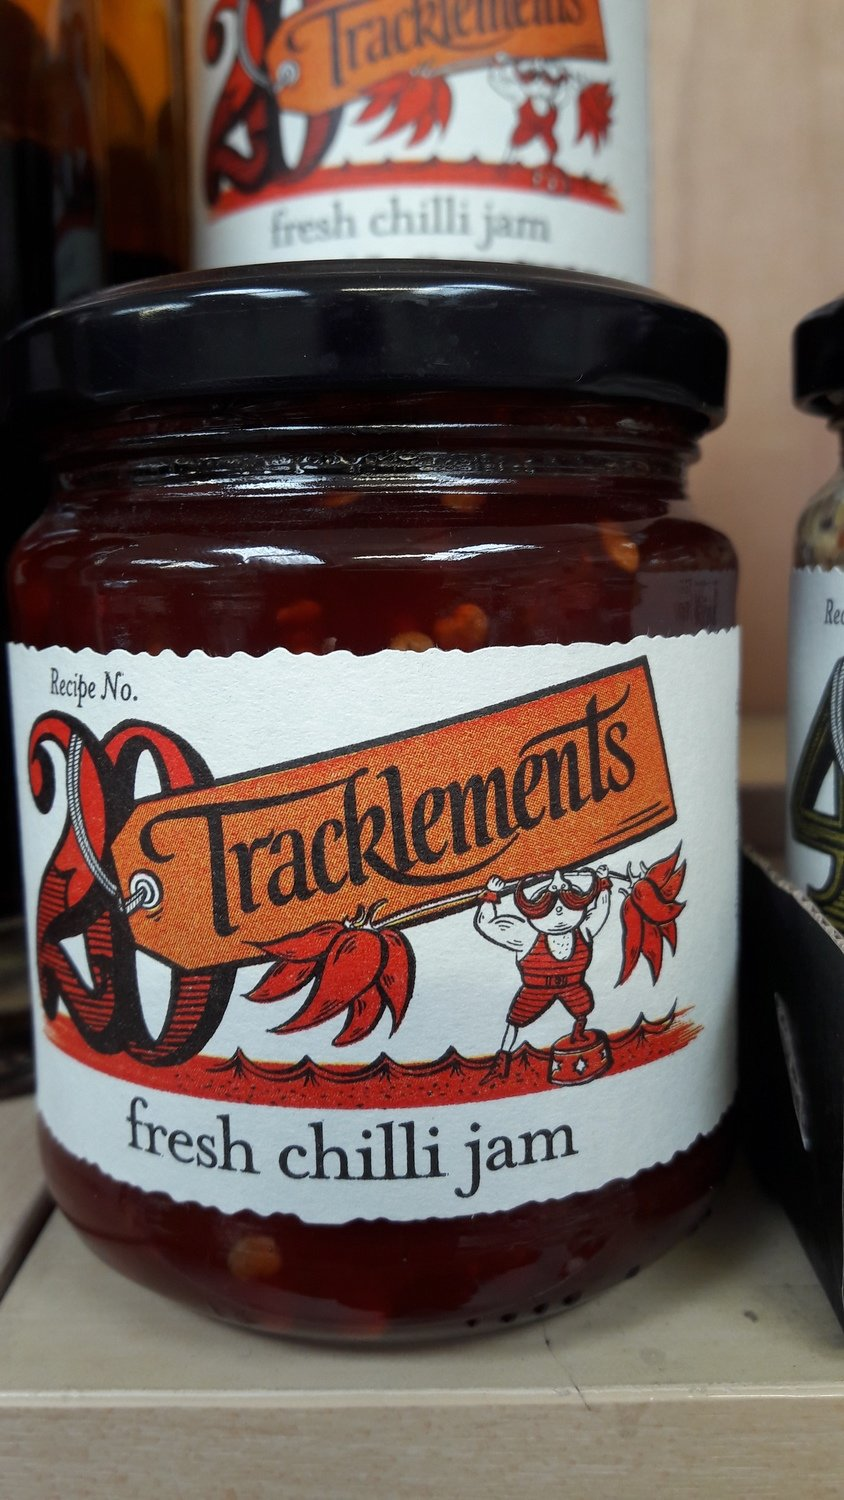 Tracklements Sweet Chilli Jam